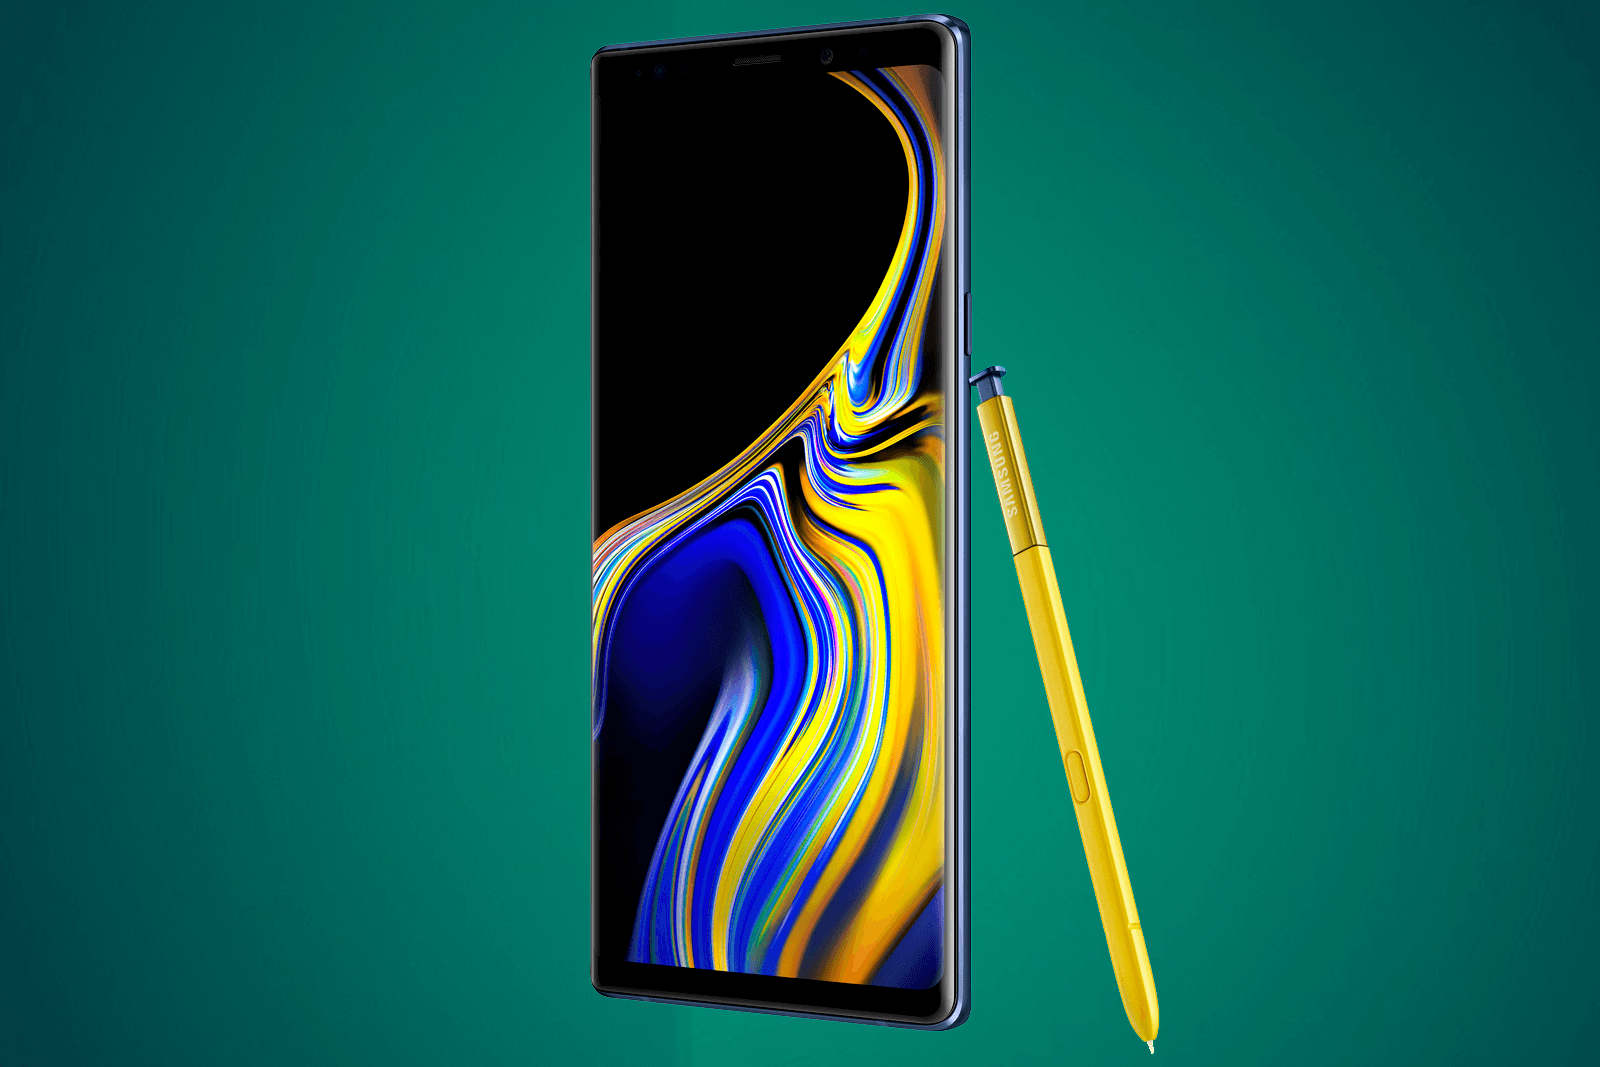 Galaxy note 9 samsung brasil review